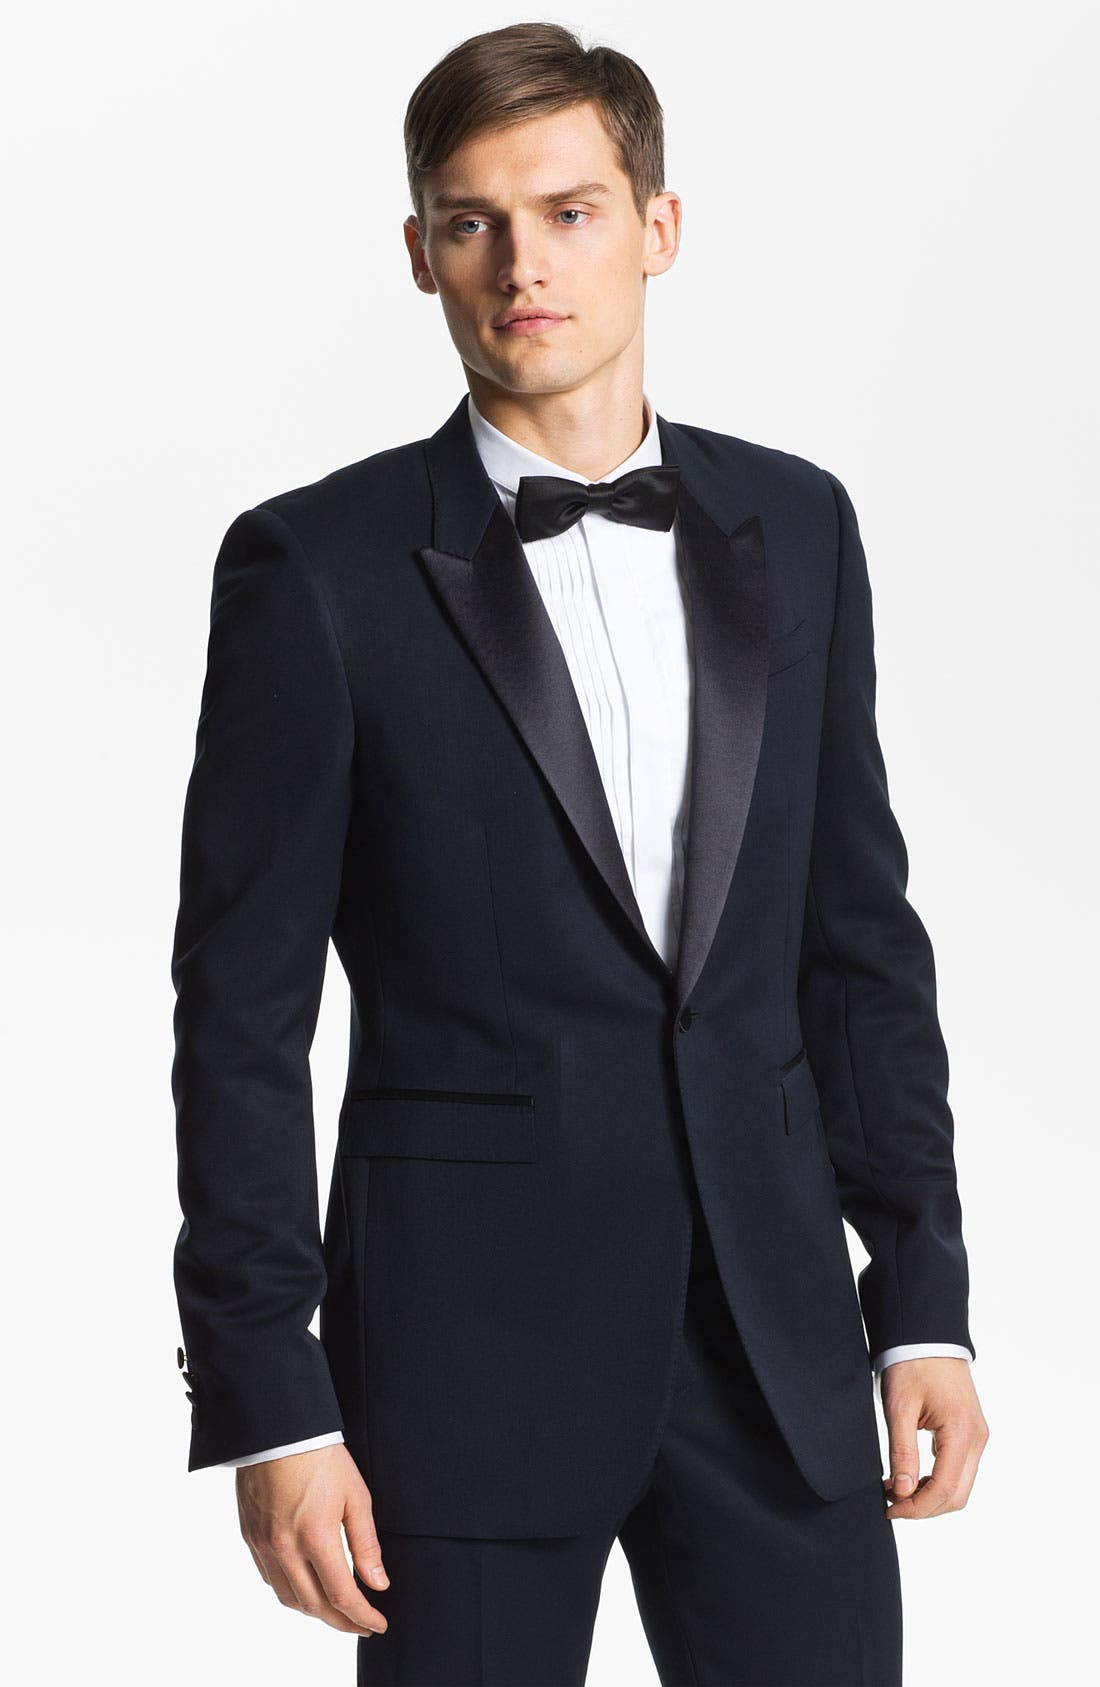 Alternate Image 1 Selected - Burberry Prorsum Peak Lapel Tuxedo Jacket